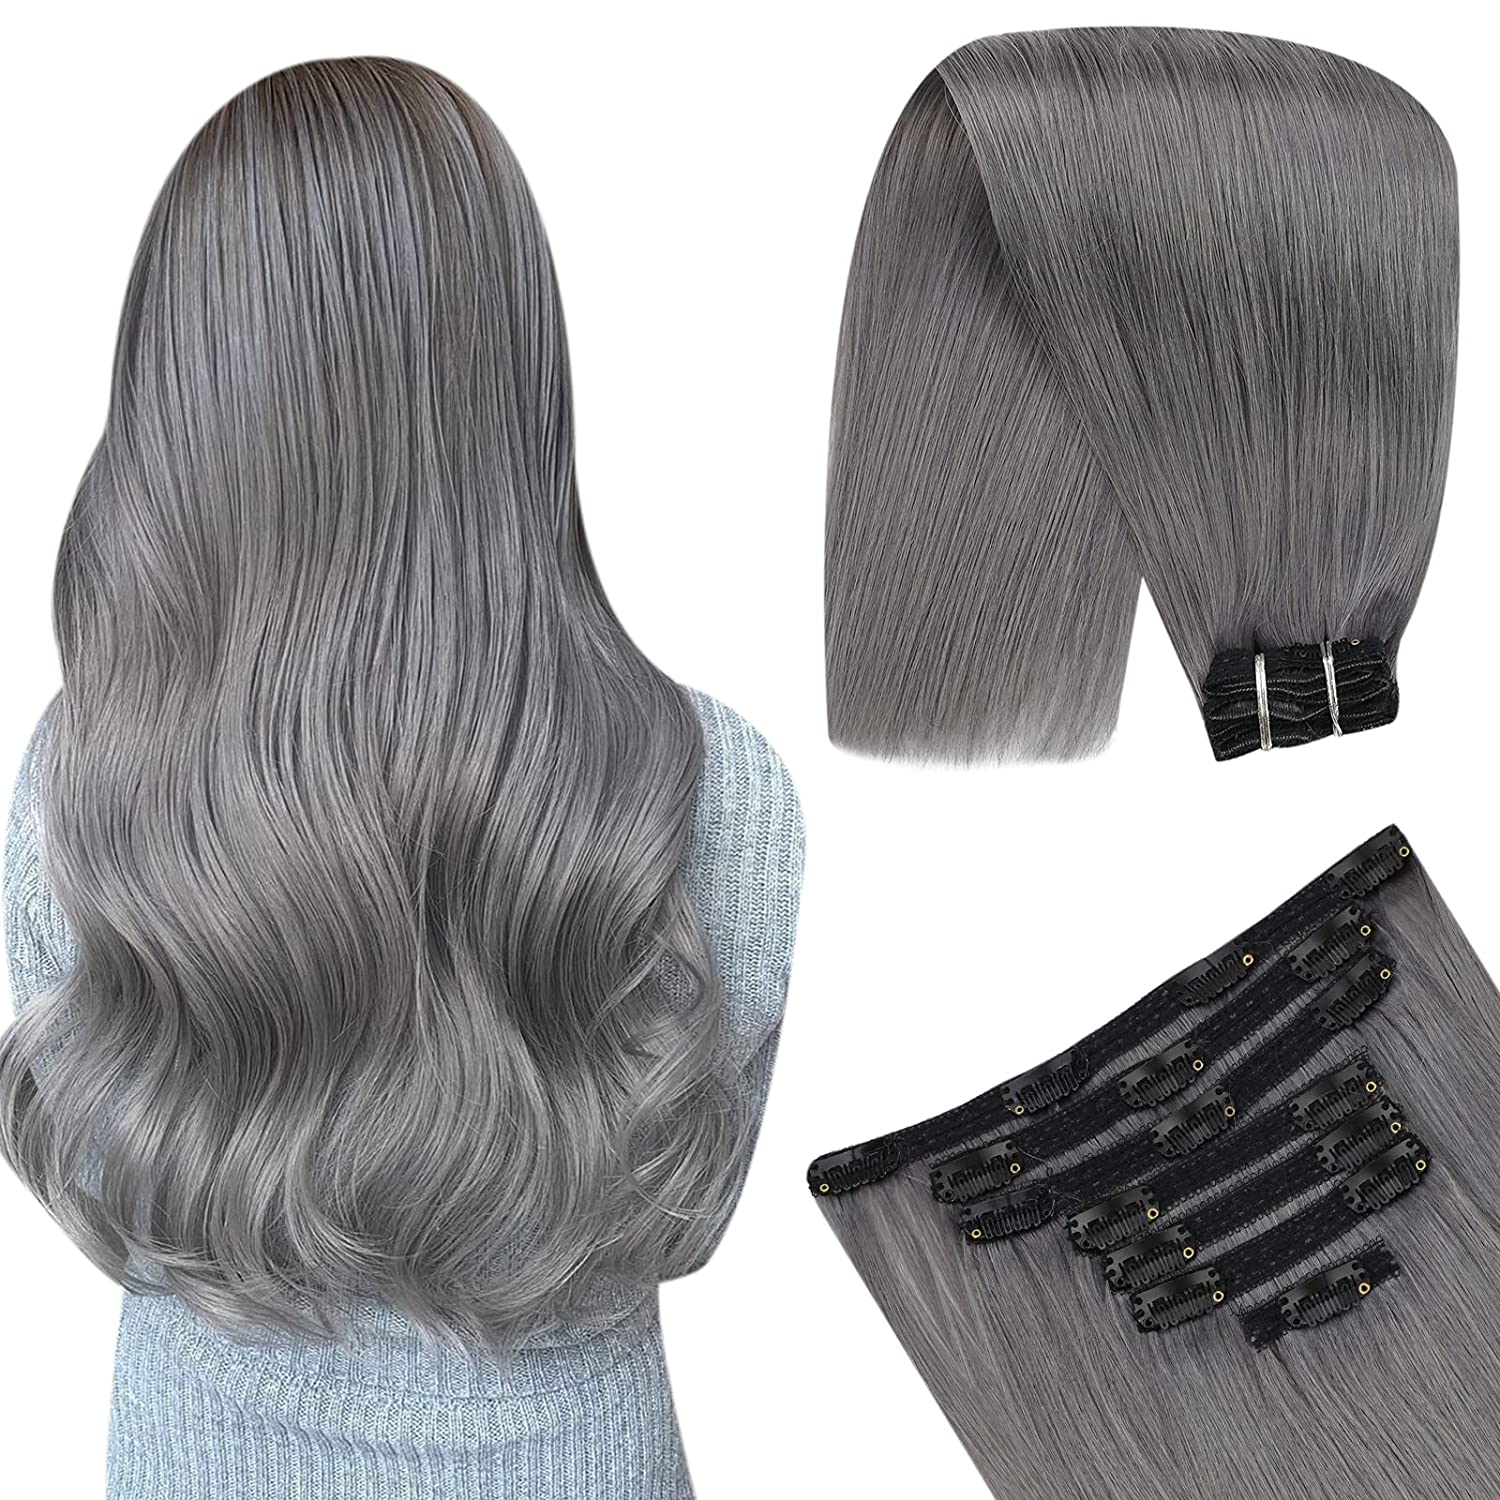 YoungSee Weft Sale SALE% OFF Hair Extensions Human Excellence Clip Hai in 22inch Long